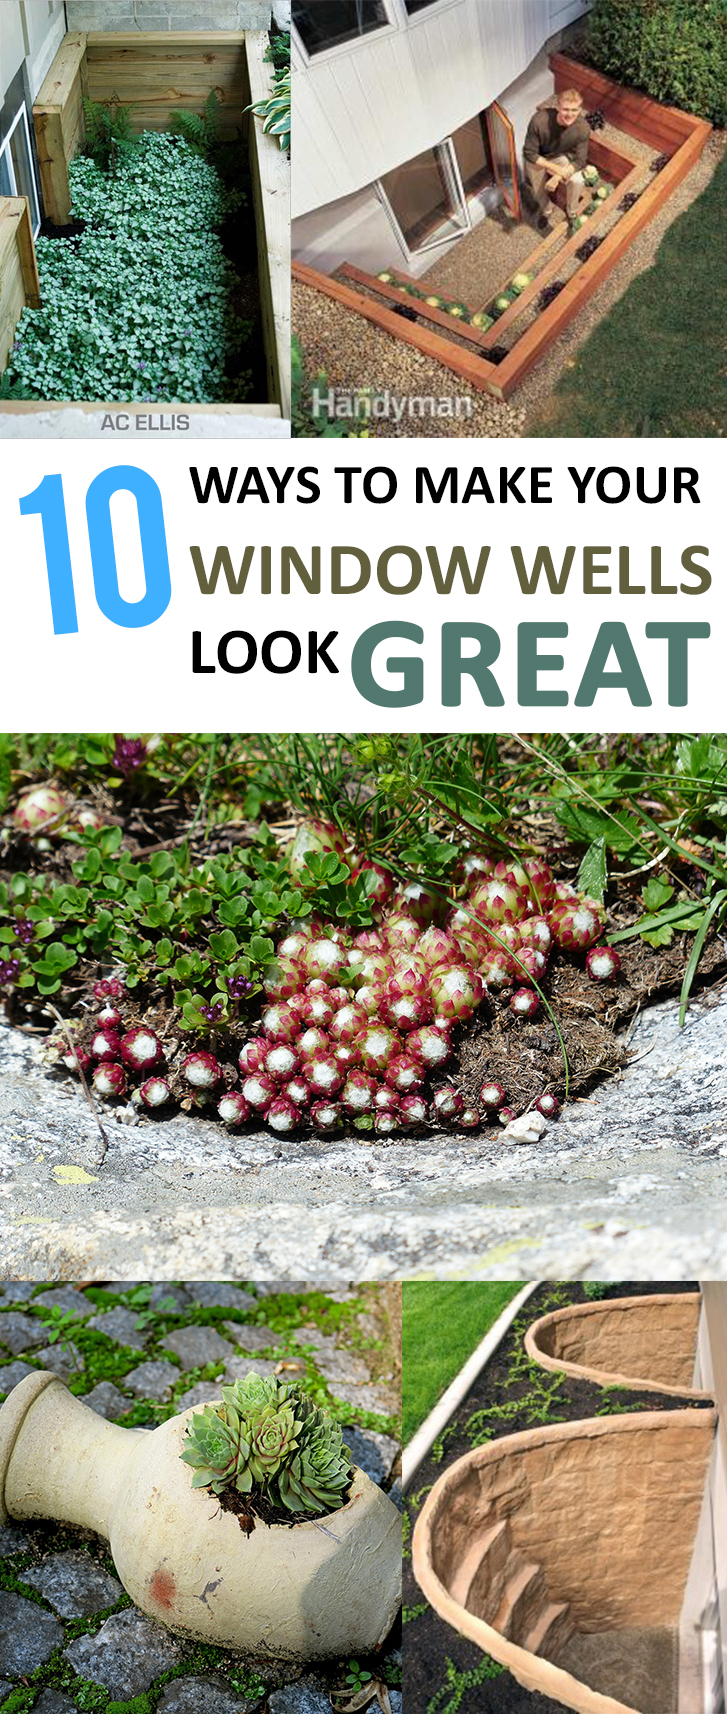 Window well, window well projects, home improvement, DIY home improvement, popular pin, easy home improvement, curb appeal projects, DIY curb appeal projects.tutorials, window well ideas